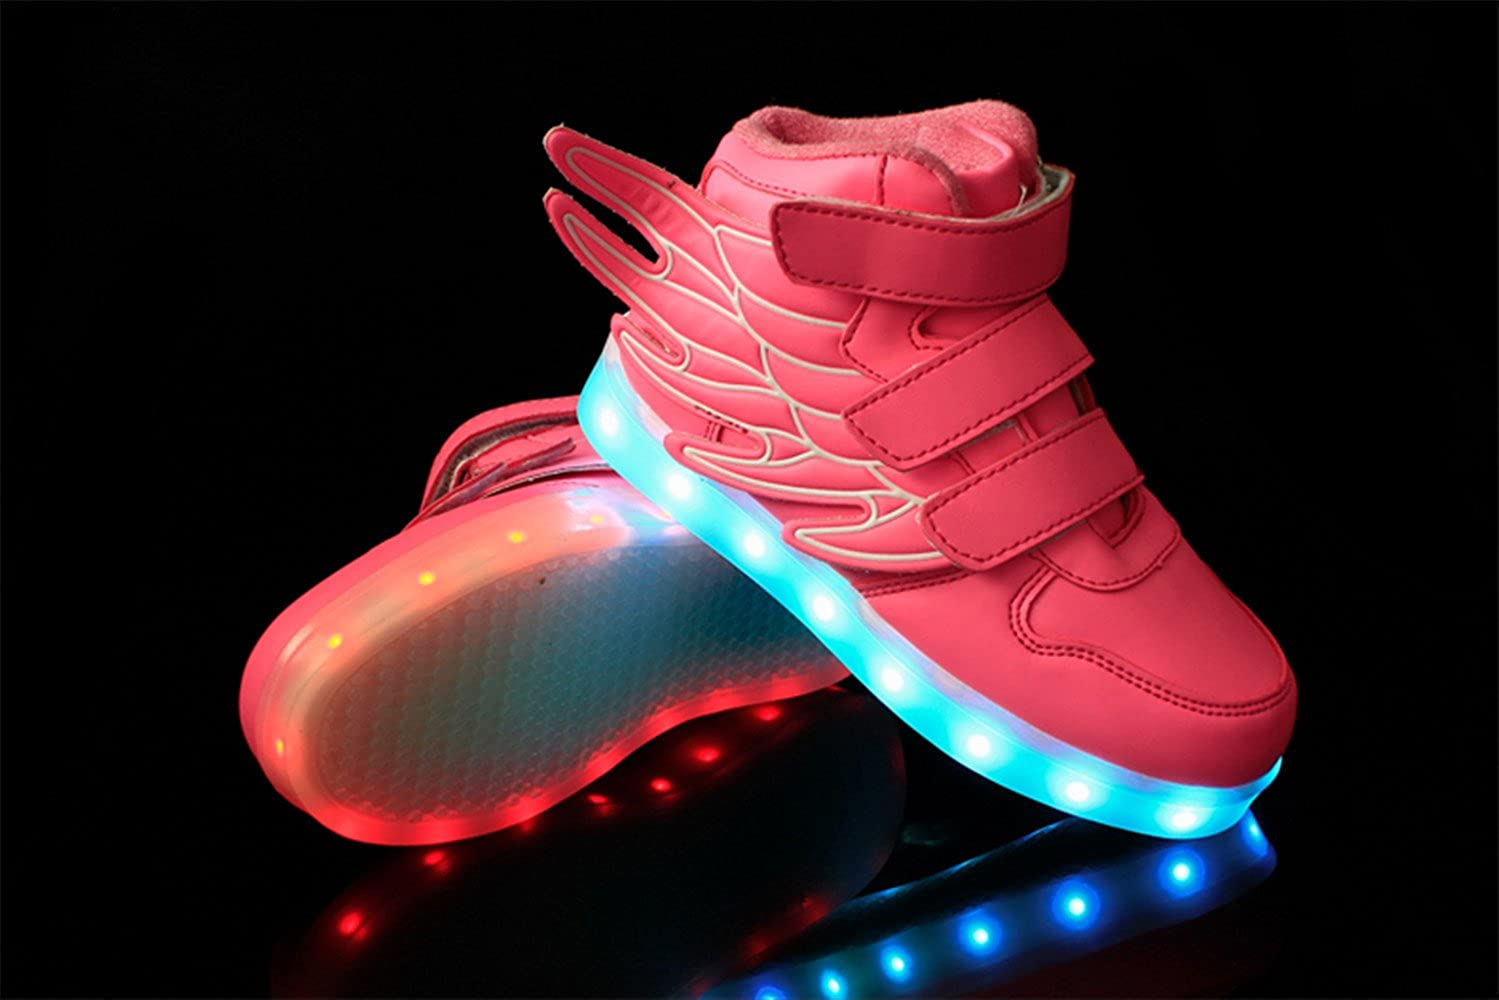 HarlanLi Unisex Boys Girls Kids 7 LED Light Up Luminous Shoes USB Charge Have Wings Casual Sneakers Pink